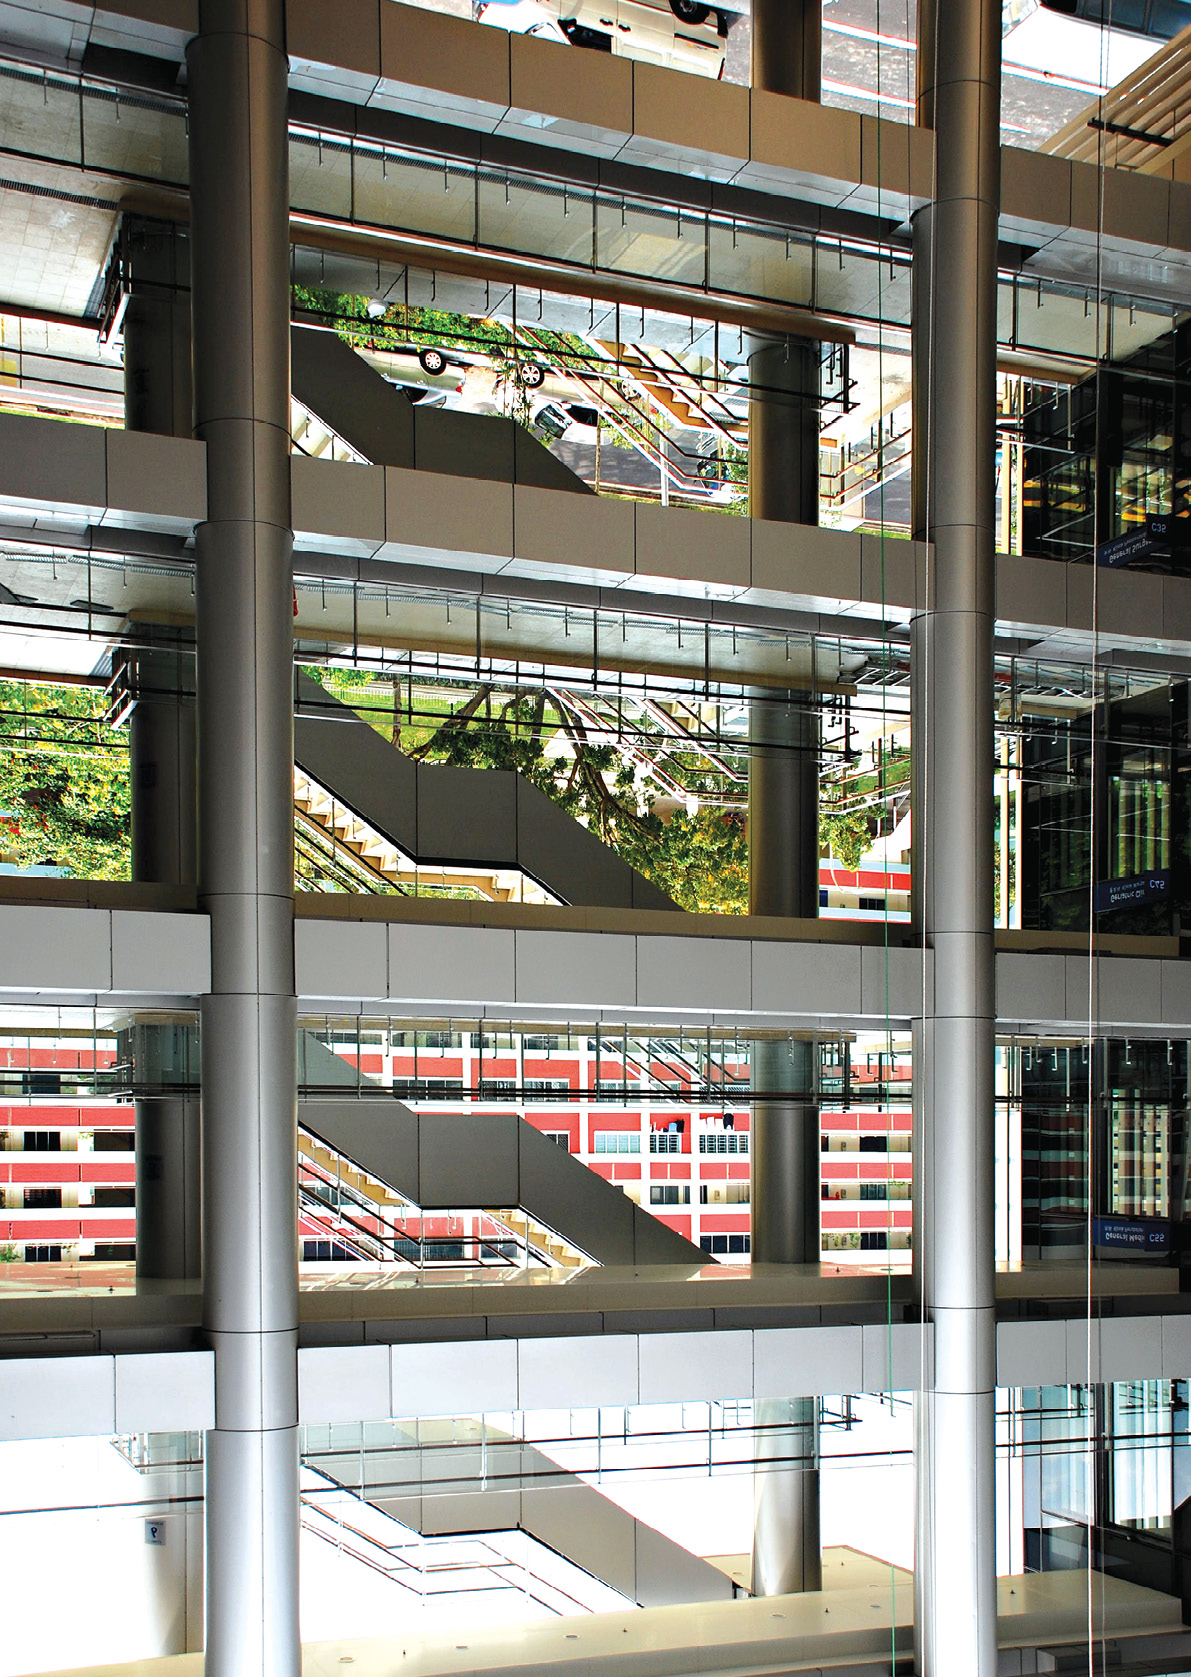 Daylit Naturally Ventilated Singapore Hospital